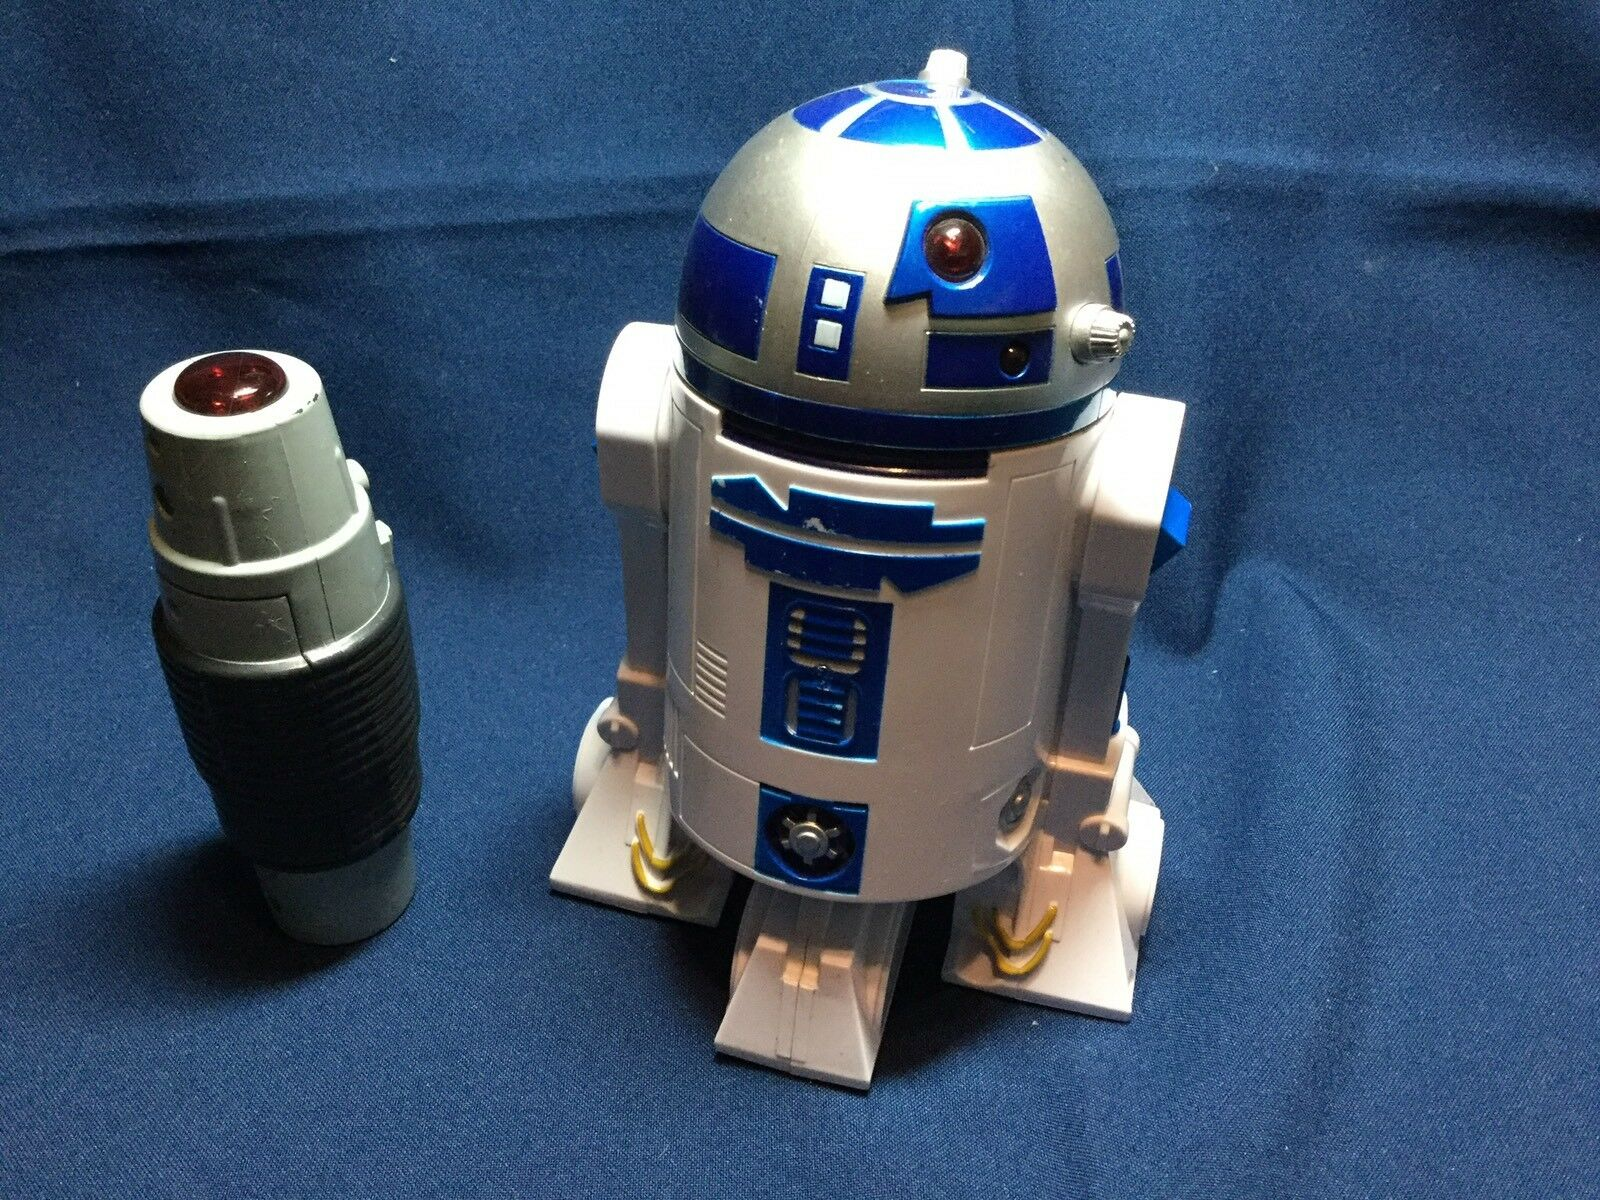 Star Wars Remote Control R2D2 With Remote Completely Completely Completely Wireless 313950